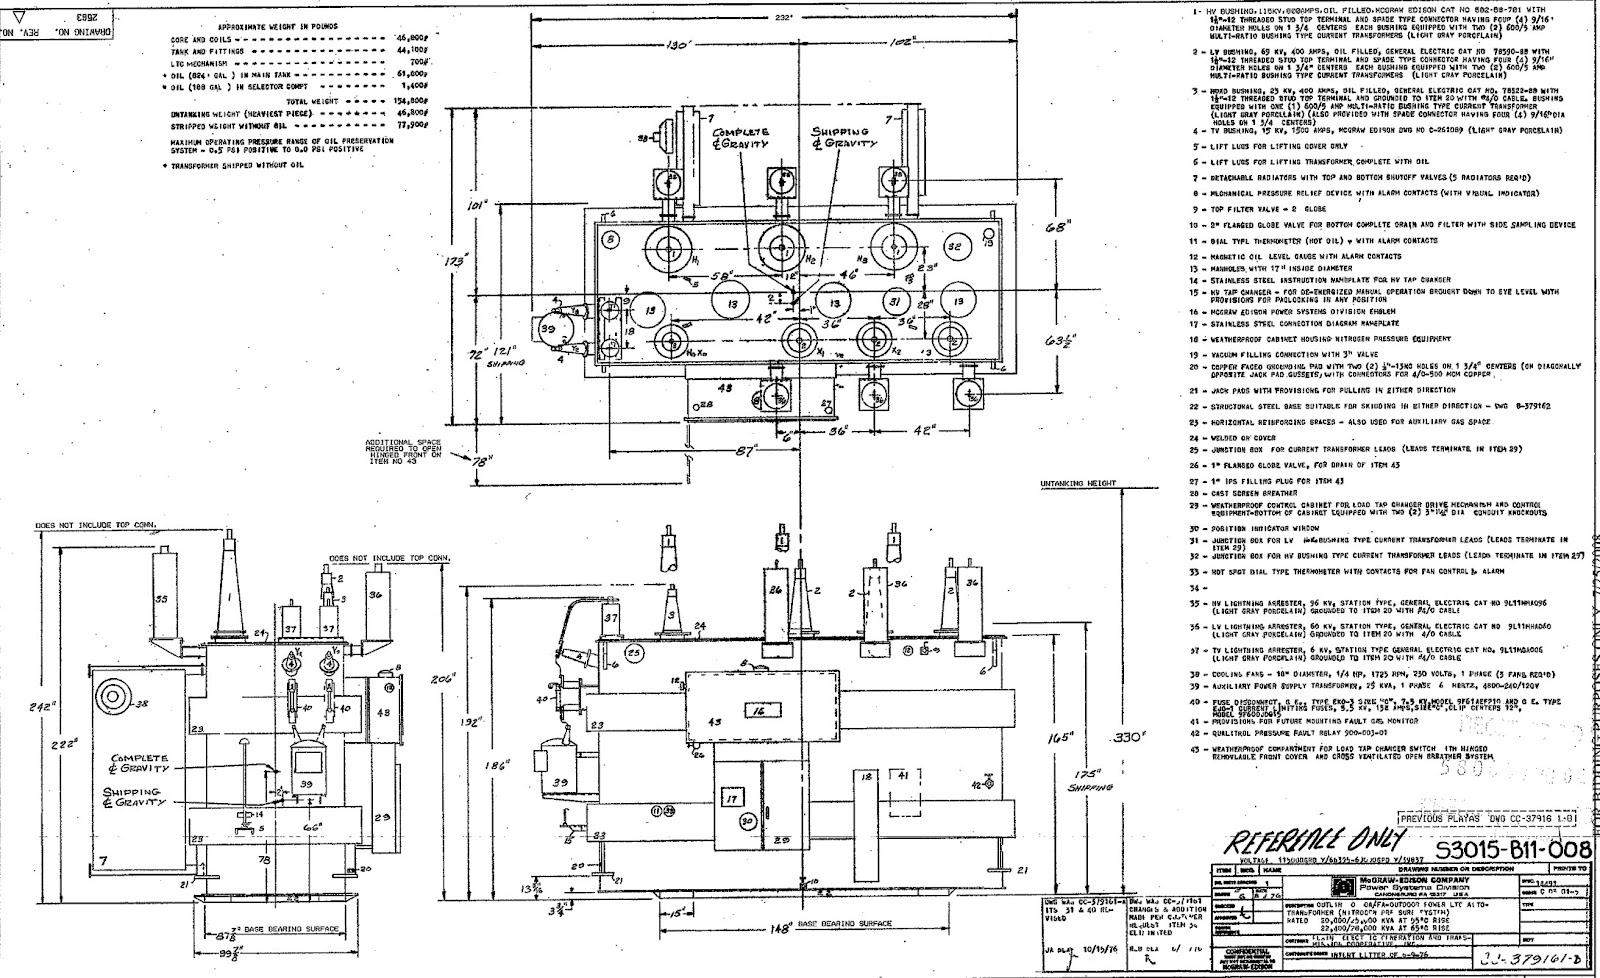 acme transformer t 1 81051 wiring diagram Download-in acme buck boost transformer wiring diagram within wiring diagram rh magnusrosen net acme transformer wiring diagrams single phase acme transformer wiring 11-o